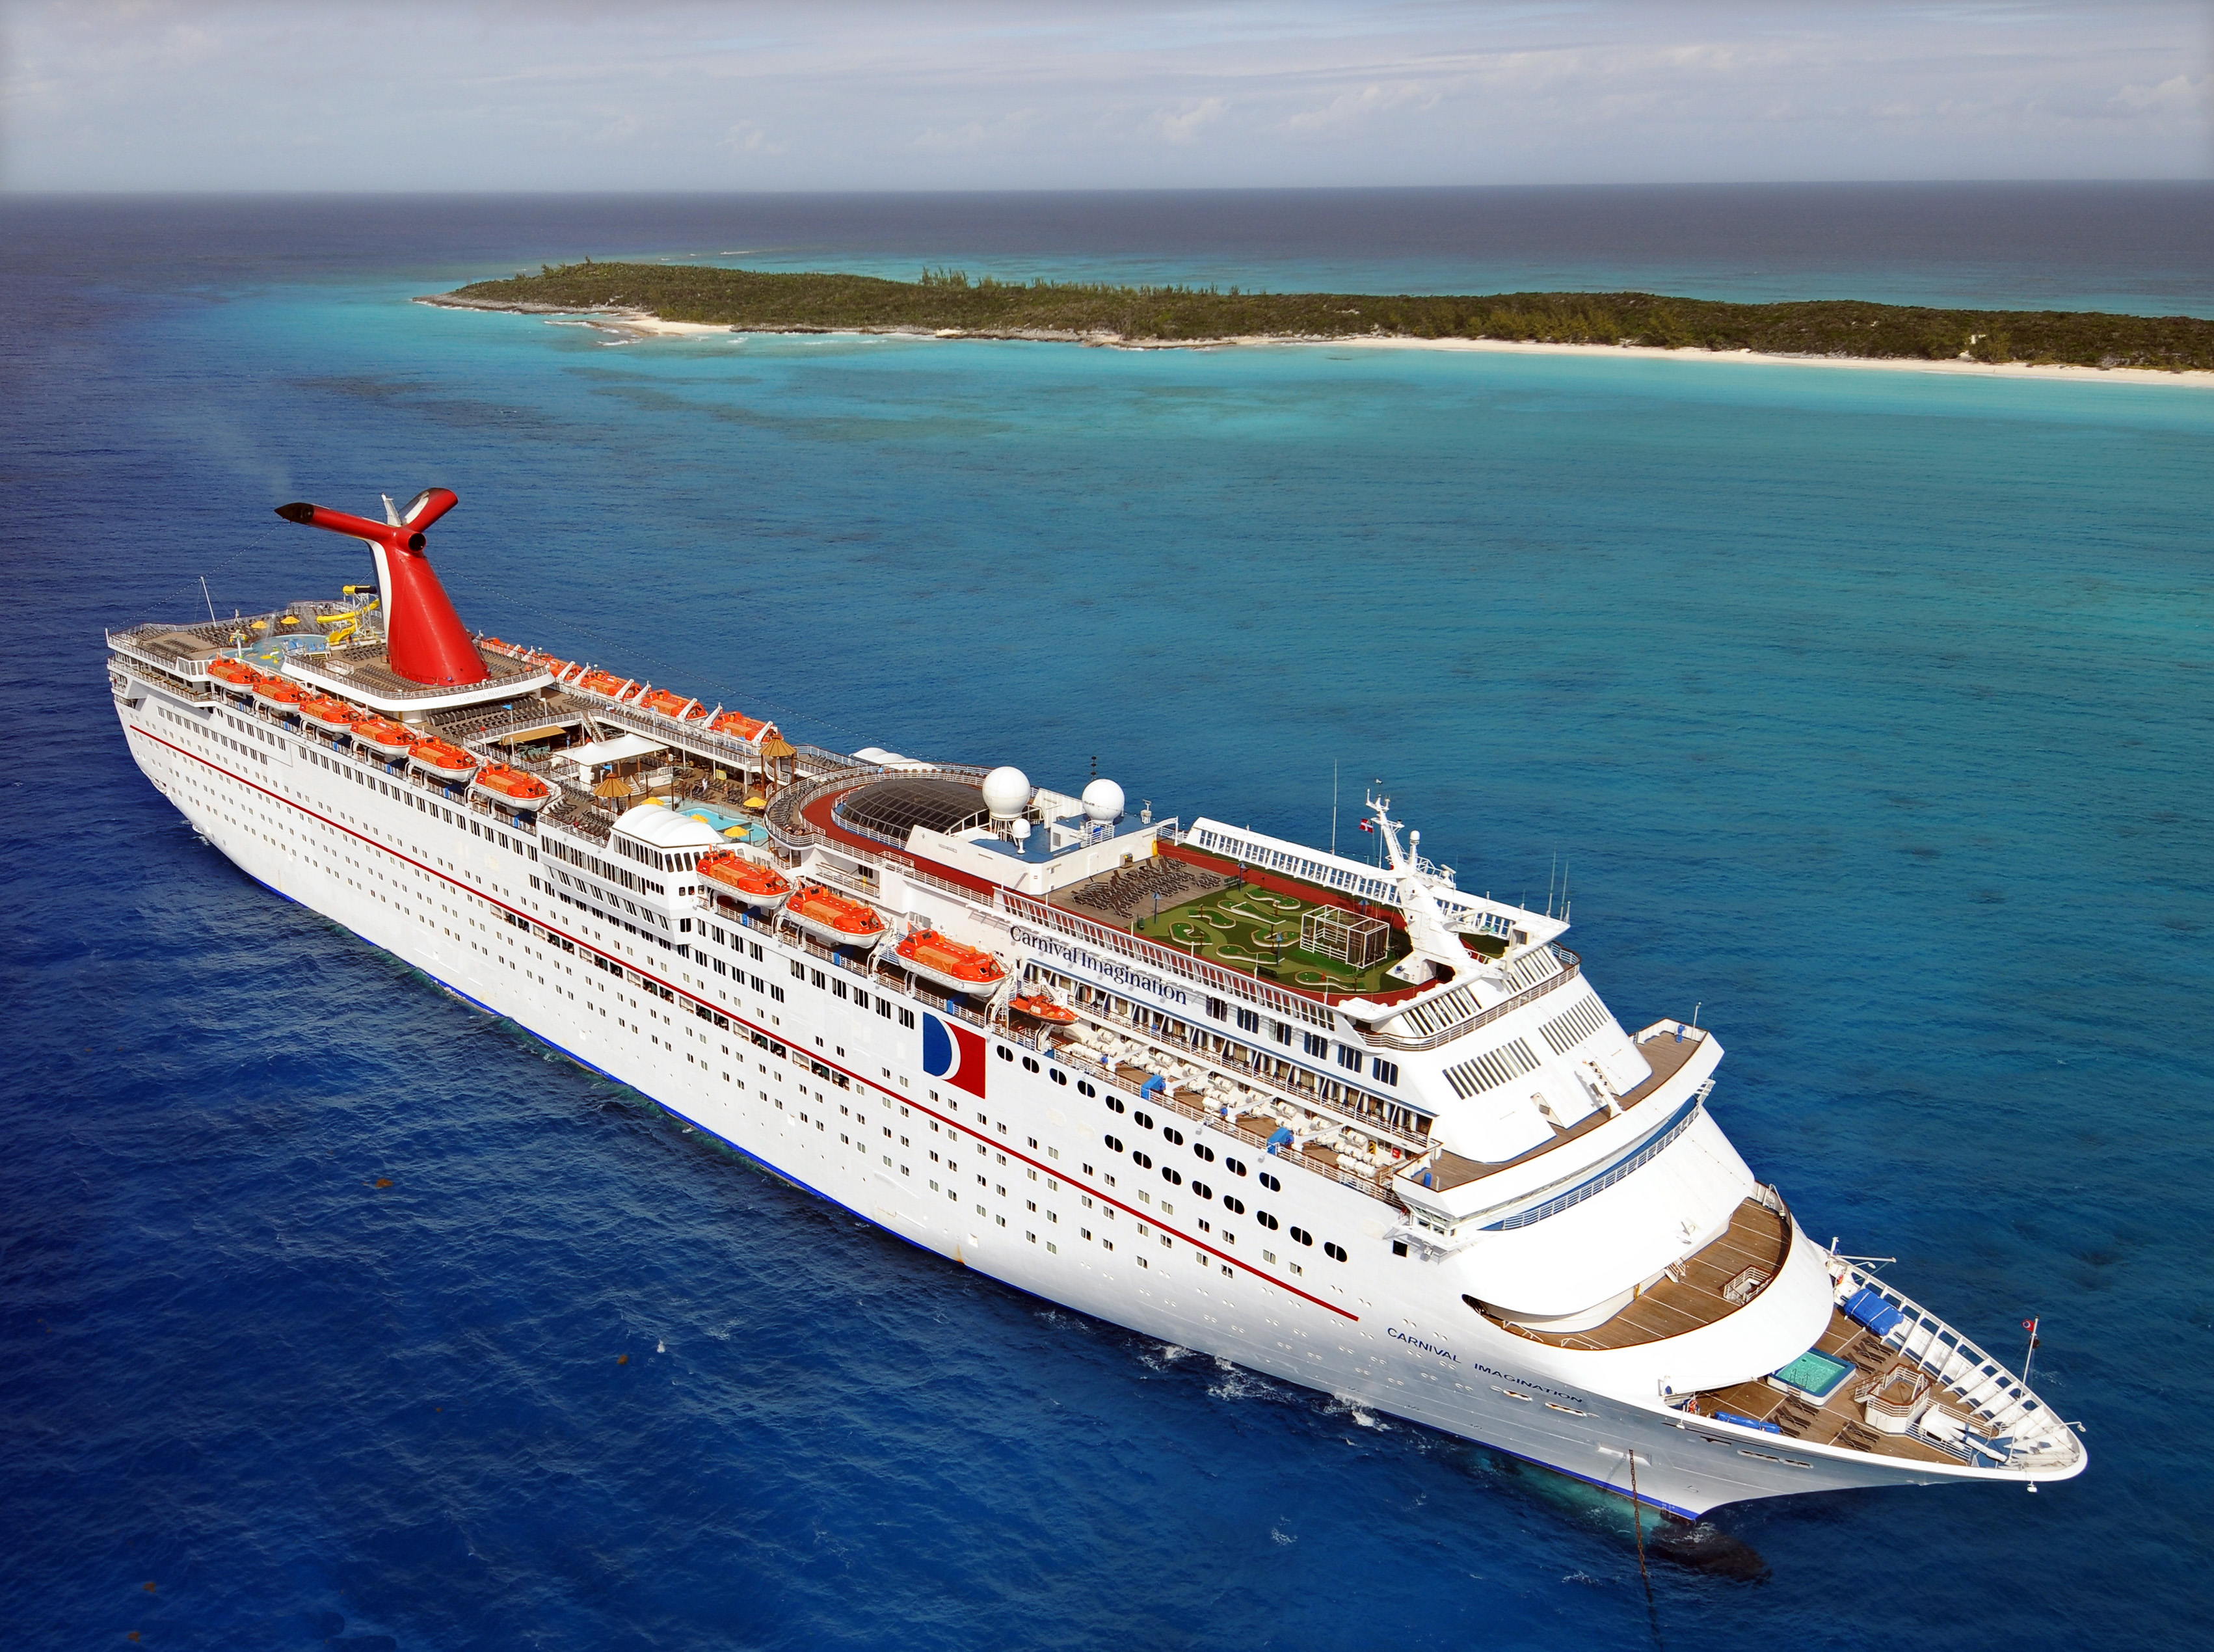 Carnival Imagination to Undergo Multi-Million-Dollar Renovation That Will Add Variety of Exciting Dining and Bar Concepts